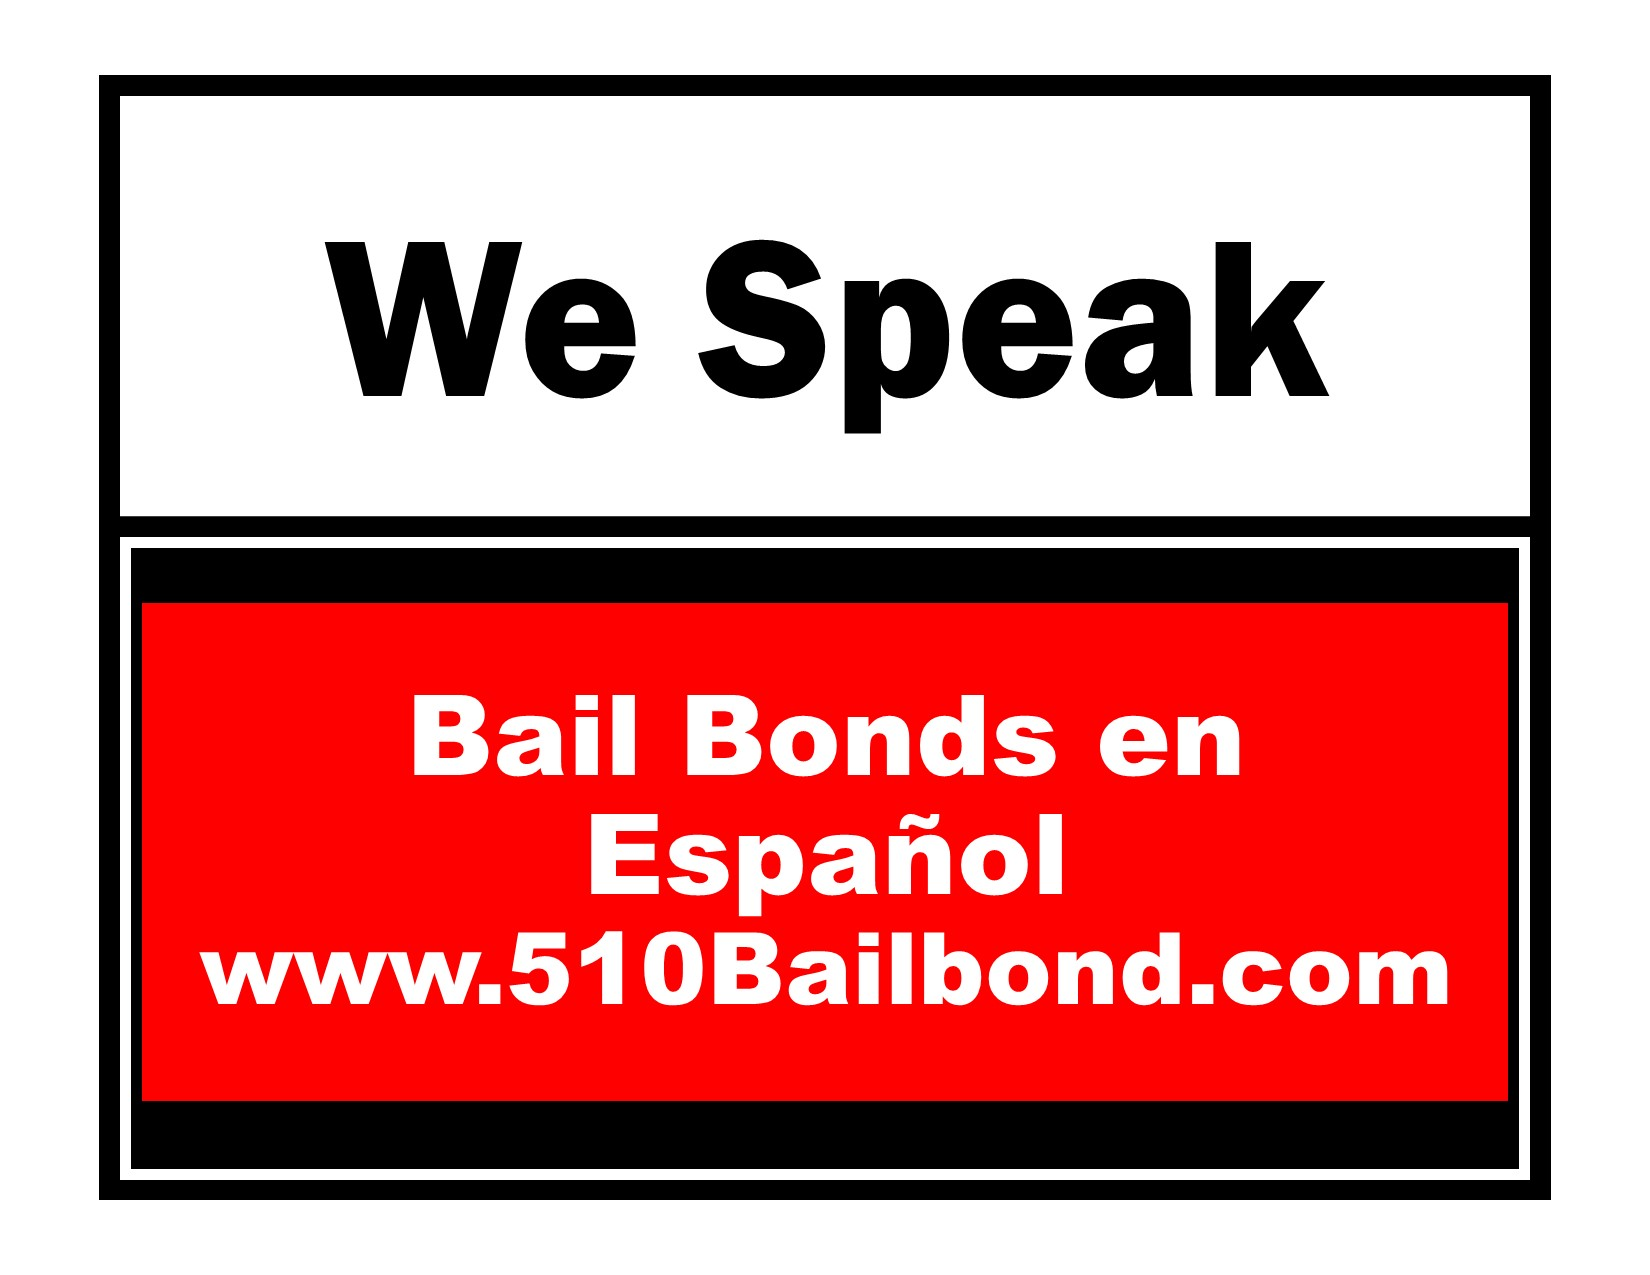 20140424 We Speak espanol